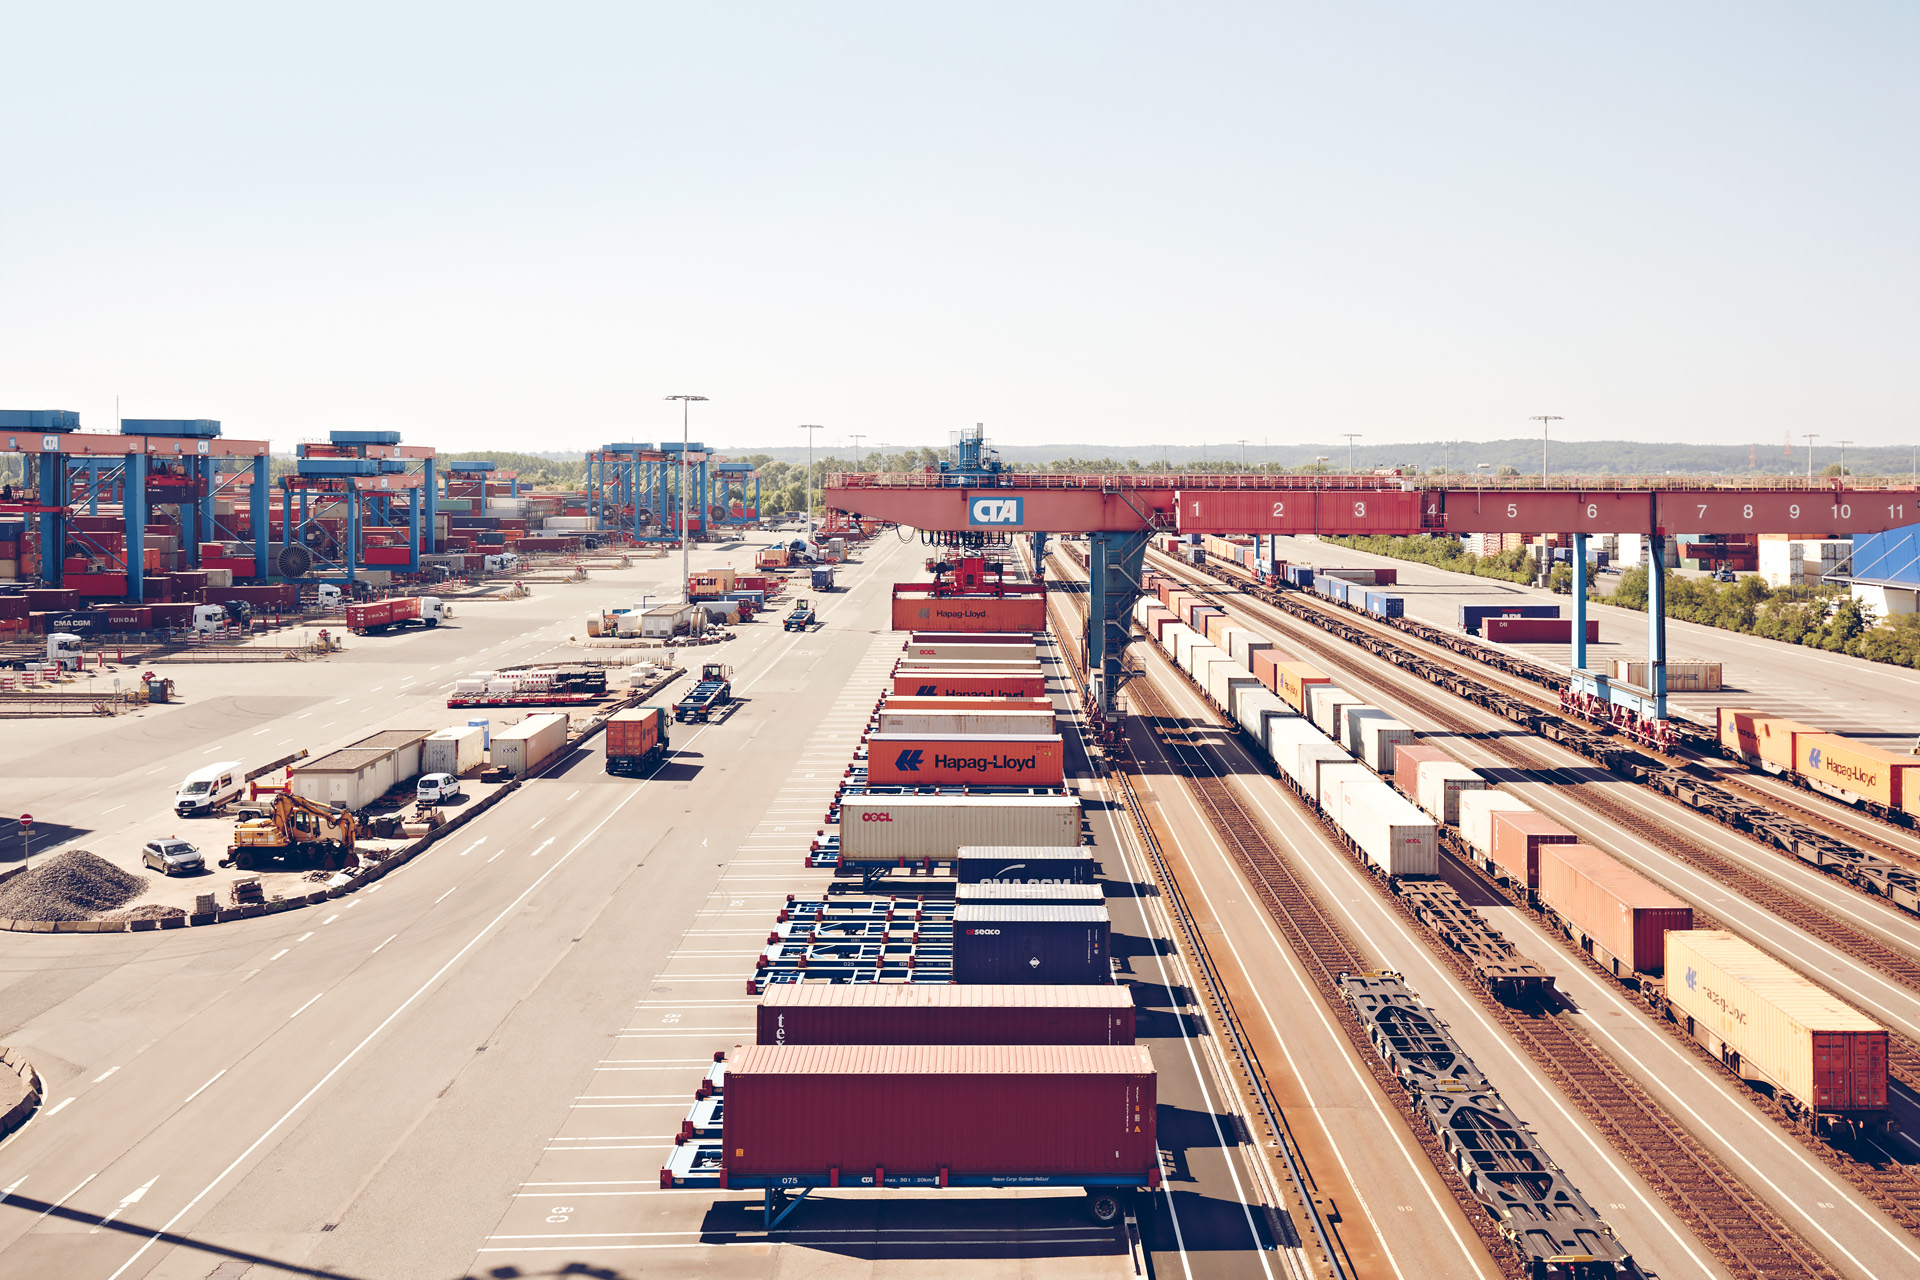 HHLA Container Terminal